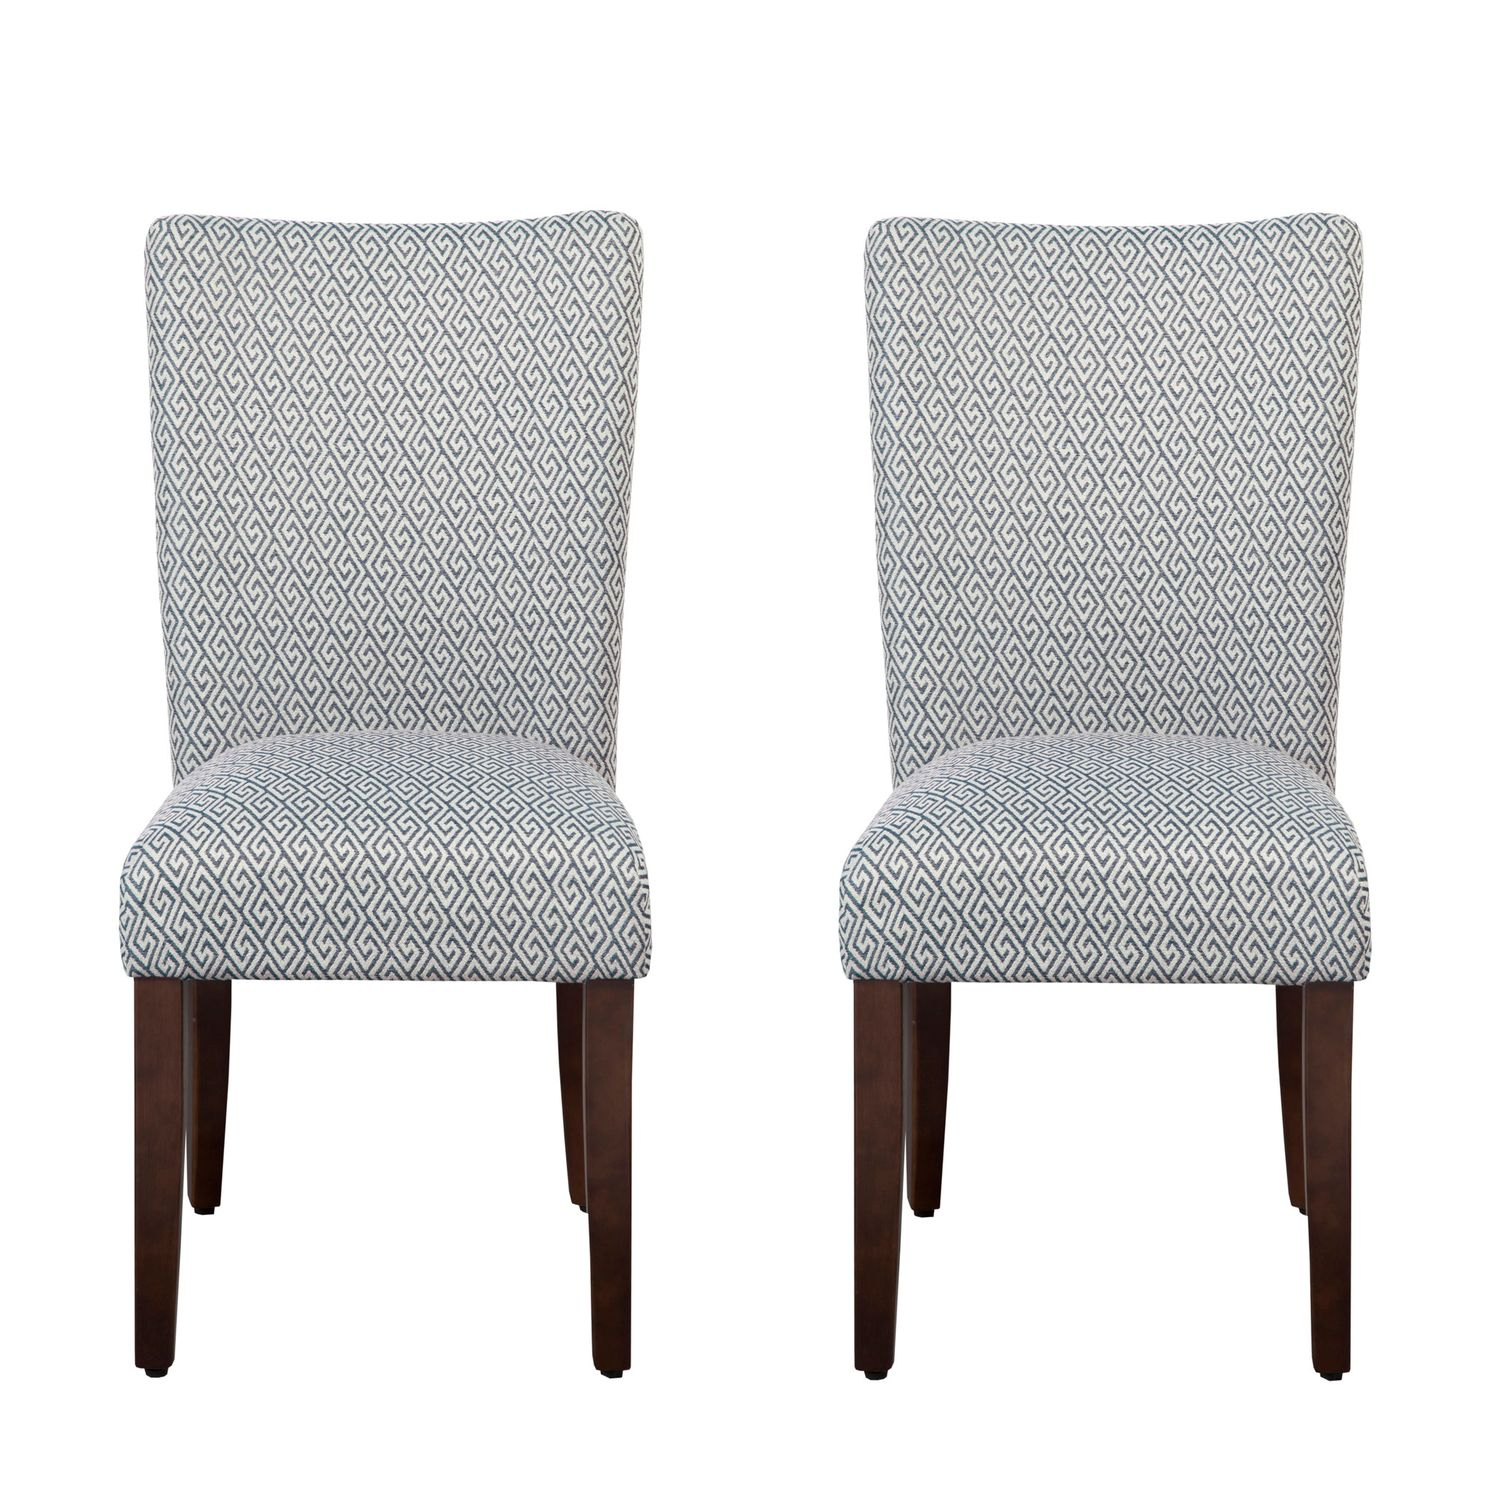 HomePop Parson Dining Chair 2 Piece Set